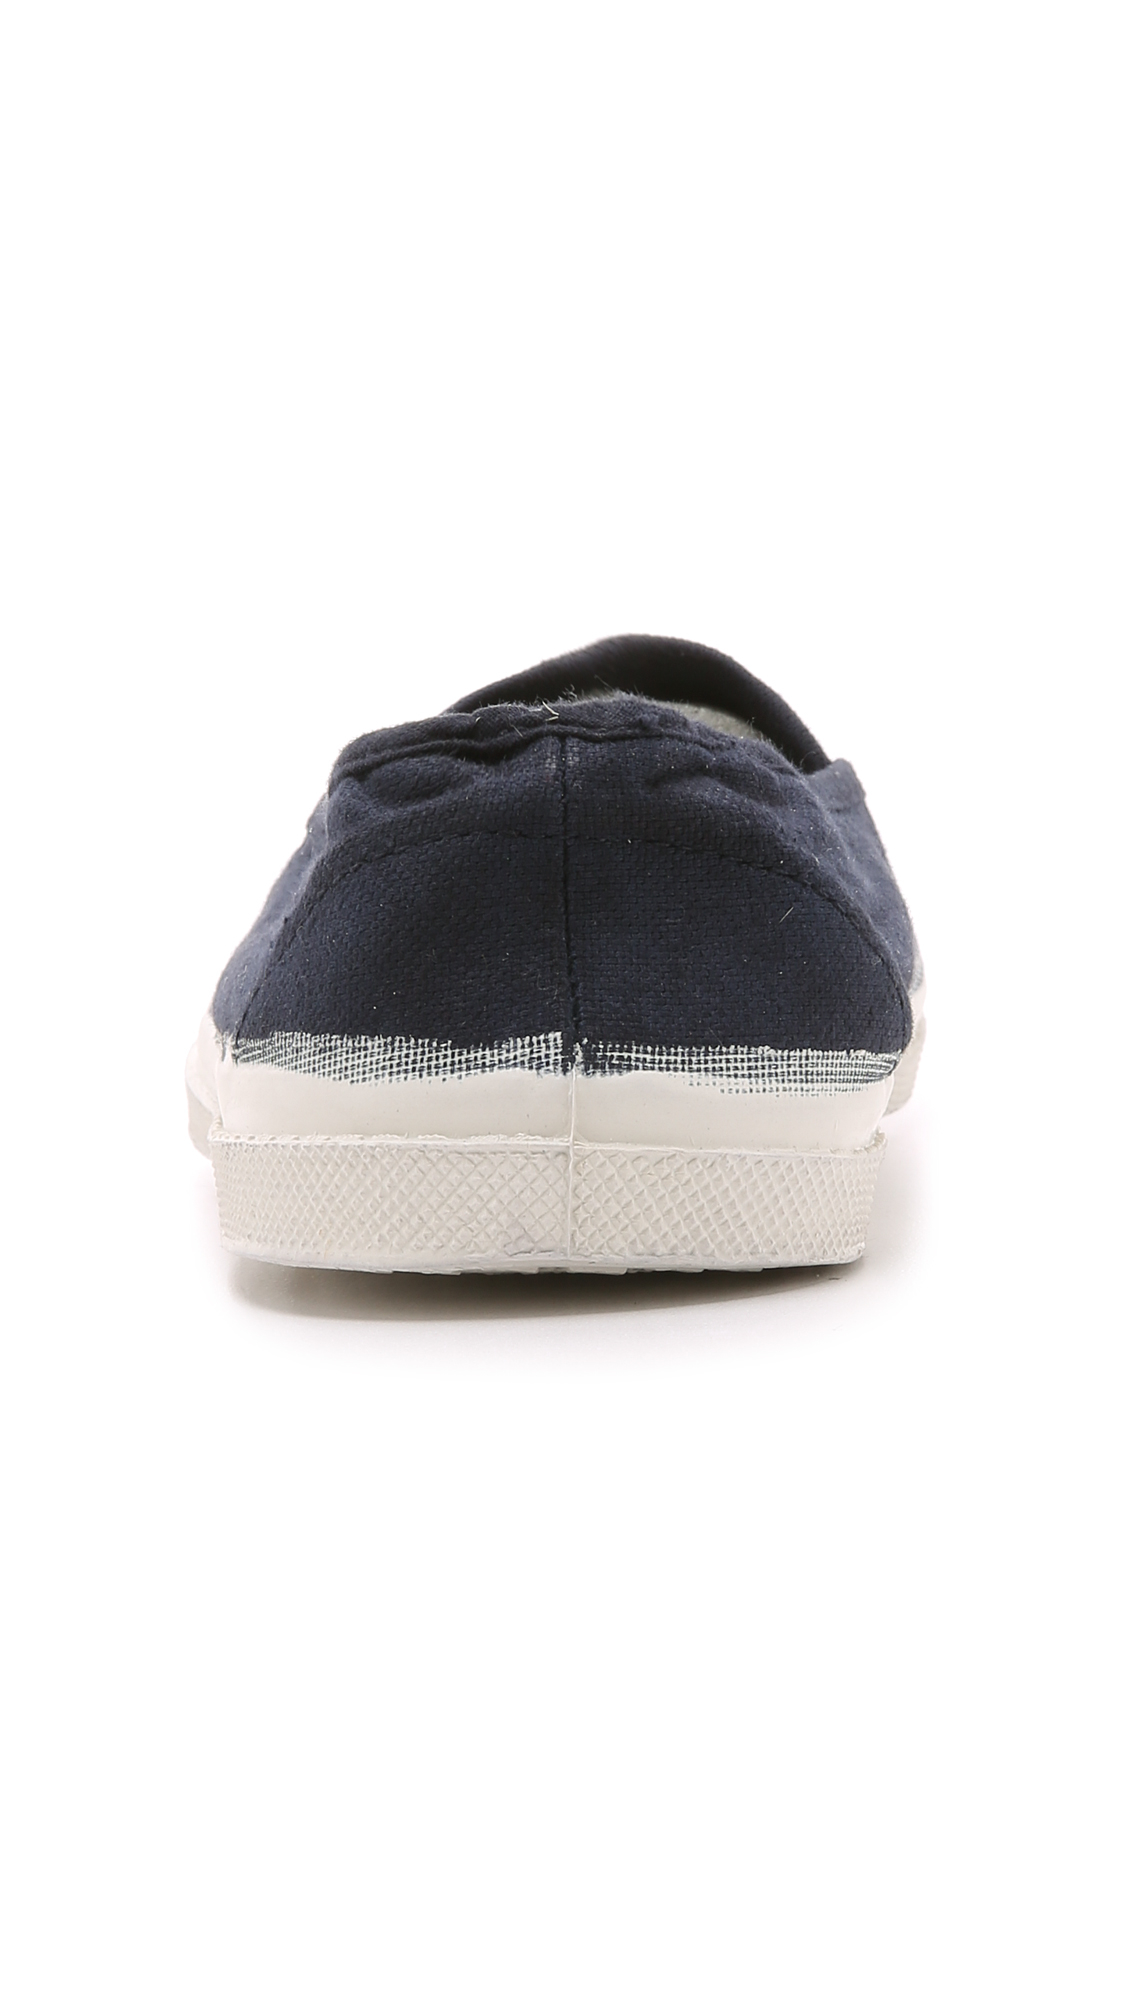 Bensimon Tennis Elastique Sneakers in Navy (Blue)